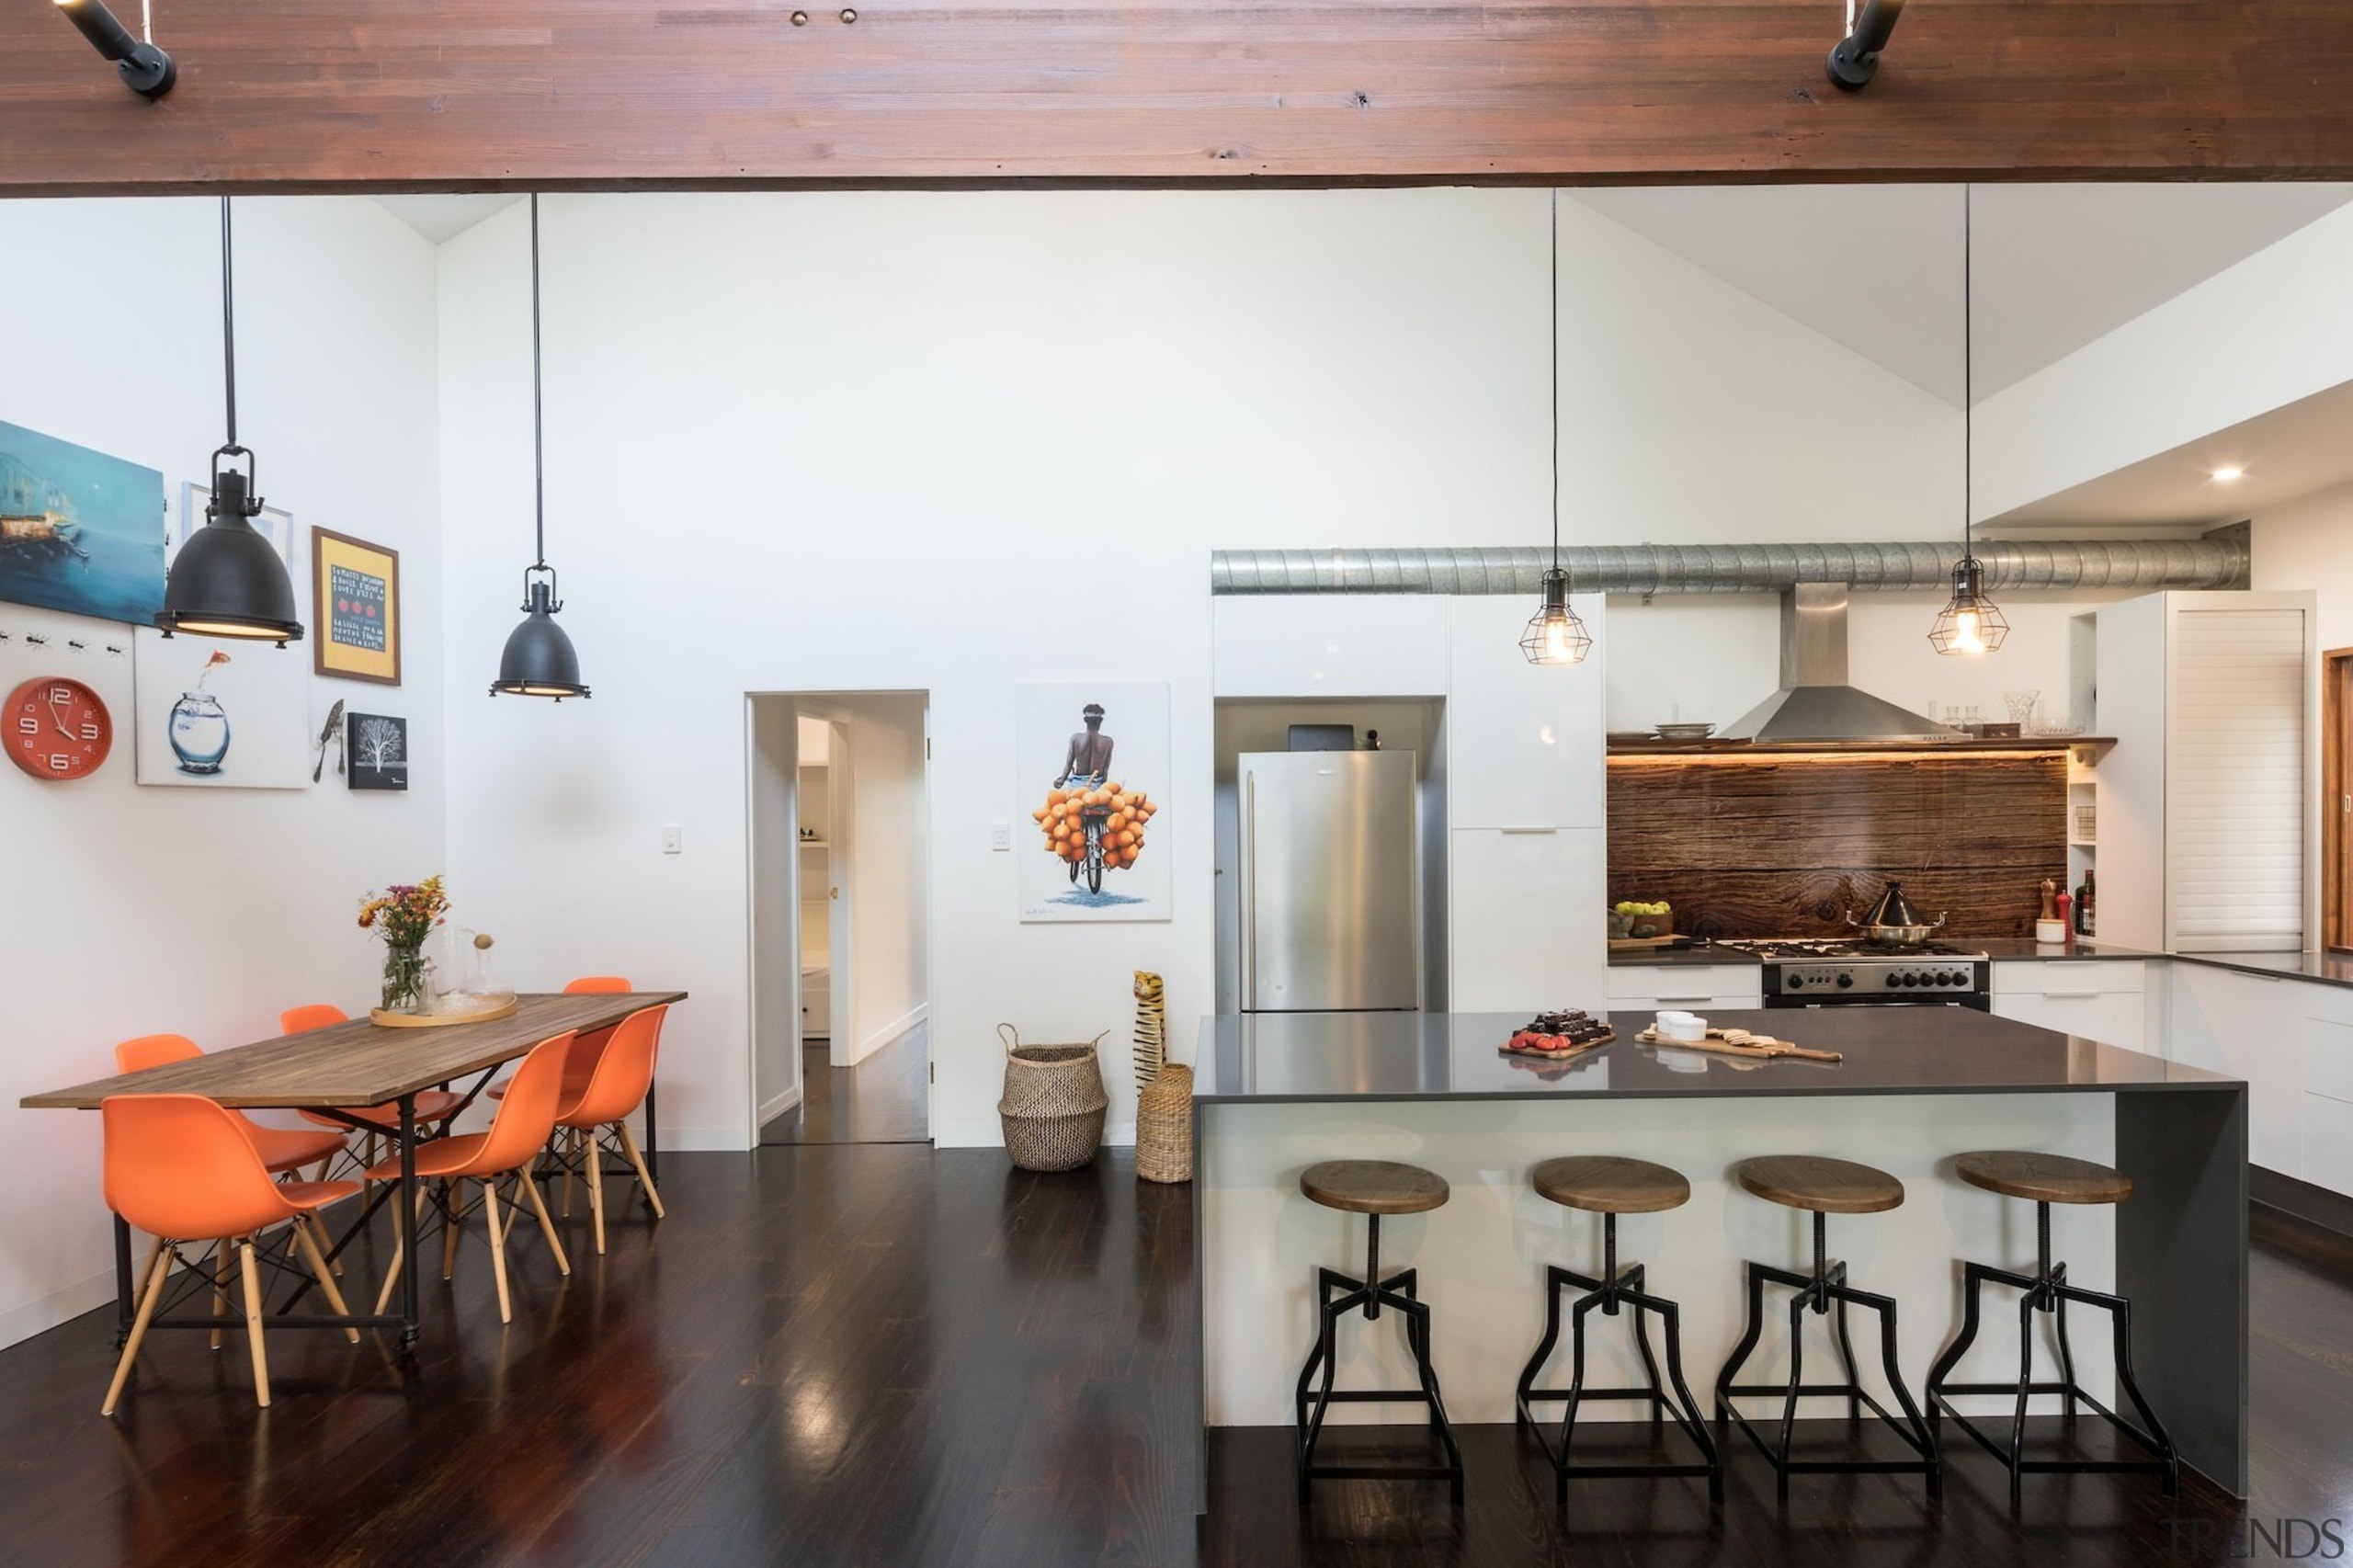 Architect: Blue Giraffe StudioPhotography by md photography architecture, ceiling, countertop, dining room, interior design, kitchen, loft, table, gray, white